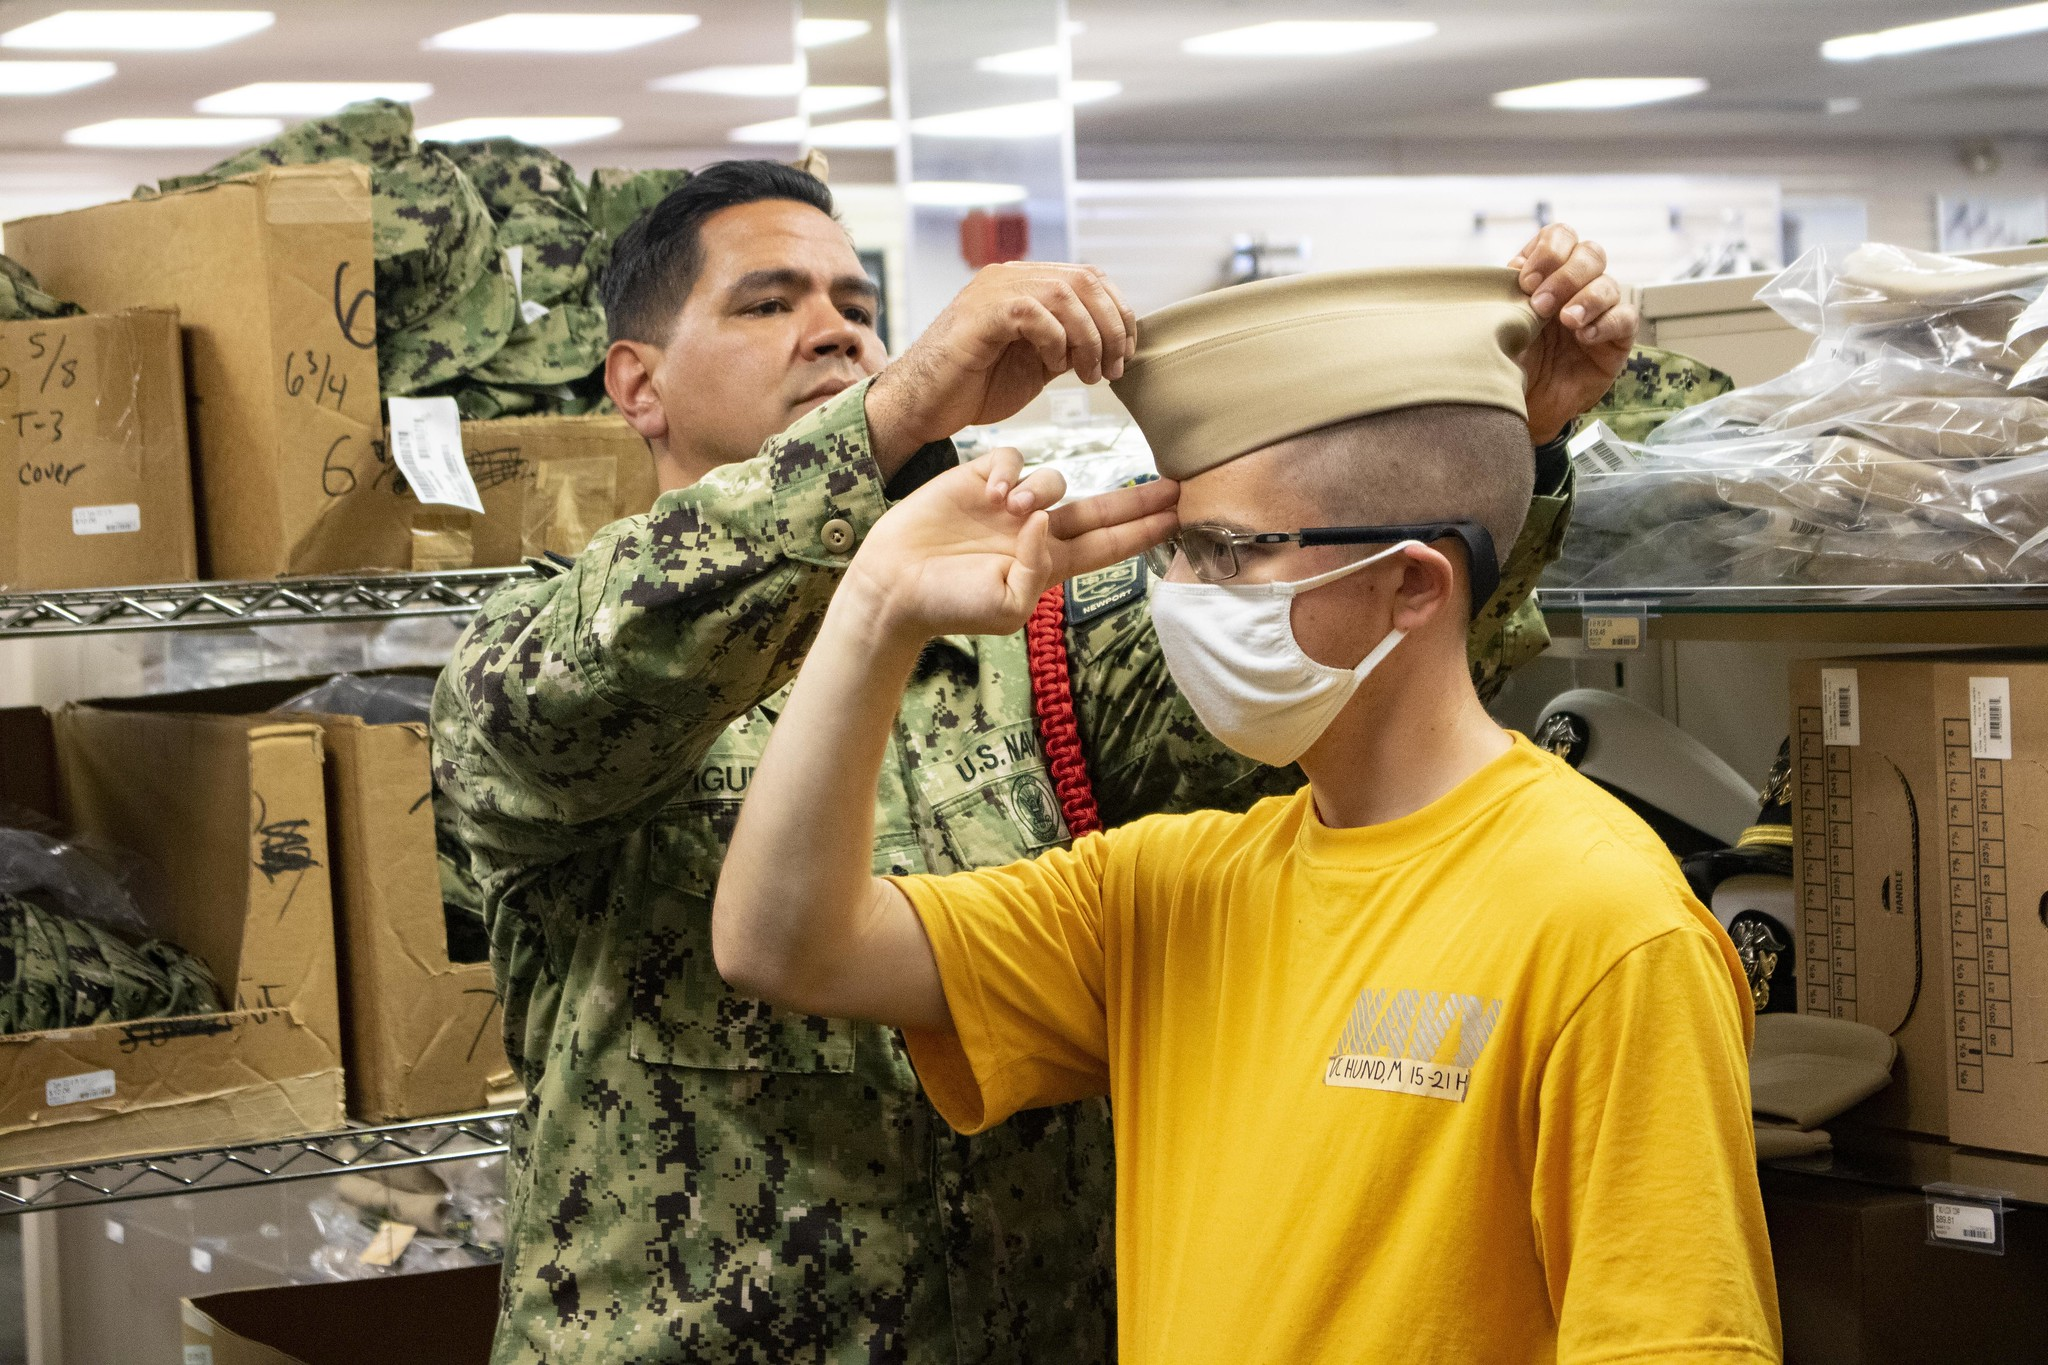 Chief Engineman Alexander Figueroa fits a garrison cover on an Officer Candidate School (OCS) student on June 3, 2021, at Officer Training Command Newport, in Newport, R.I. (Officer Candidate Andrea Perez/Navy)